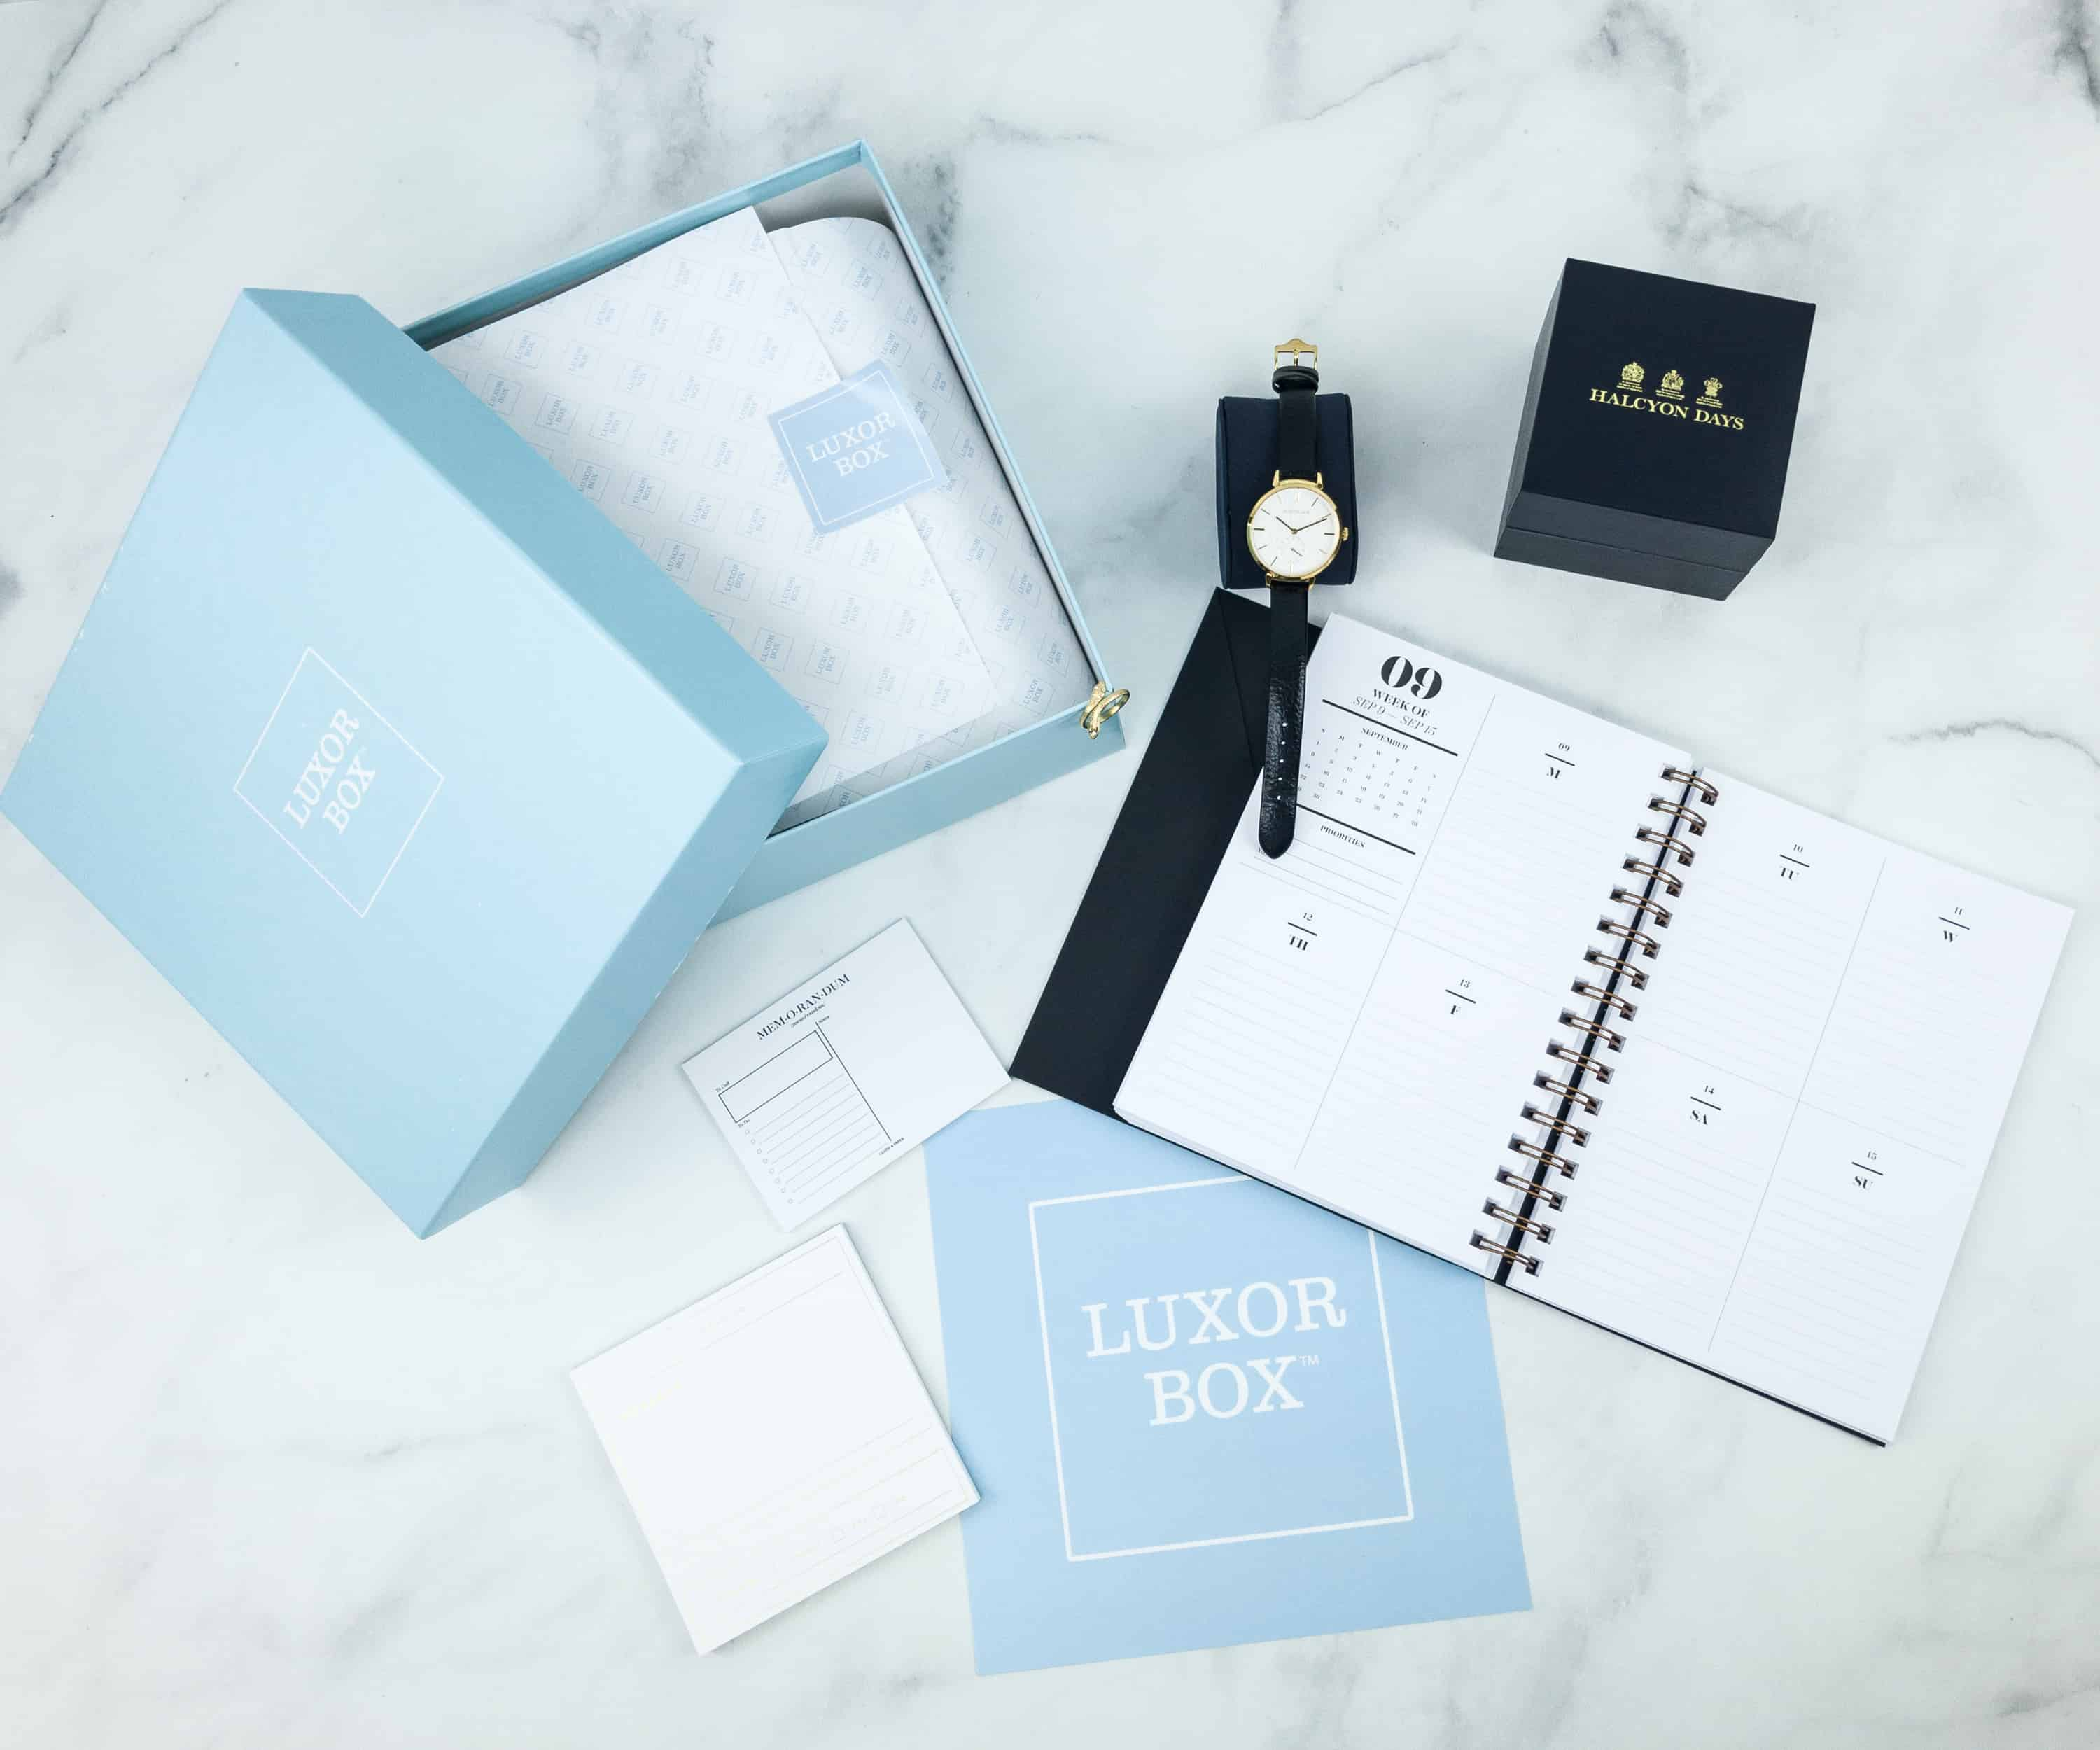 Luxor Box November 2018 Subscription Box Review